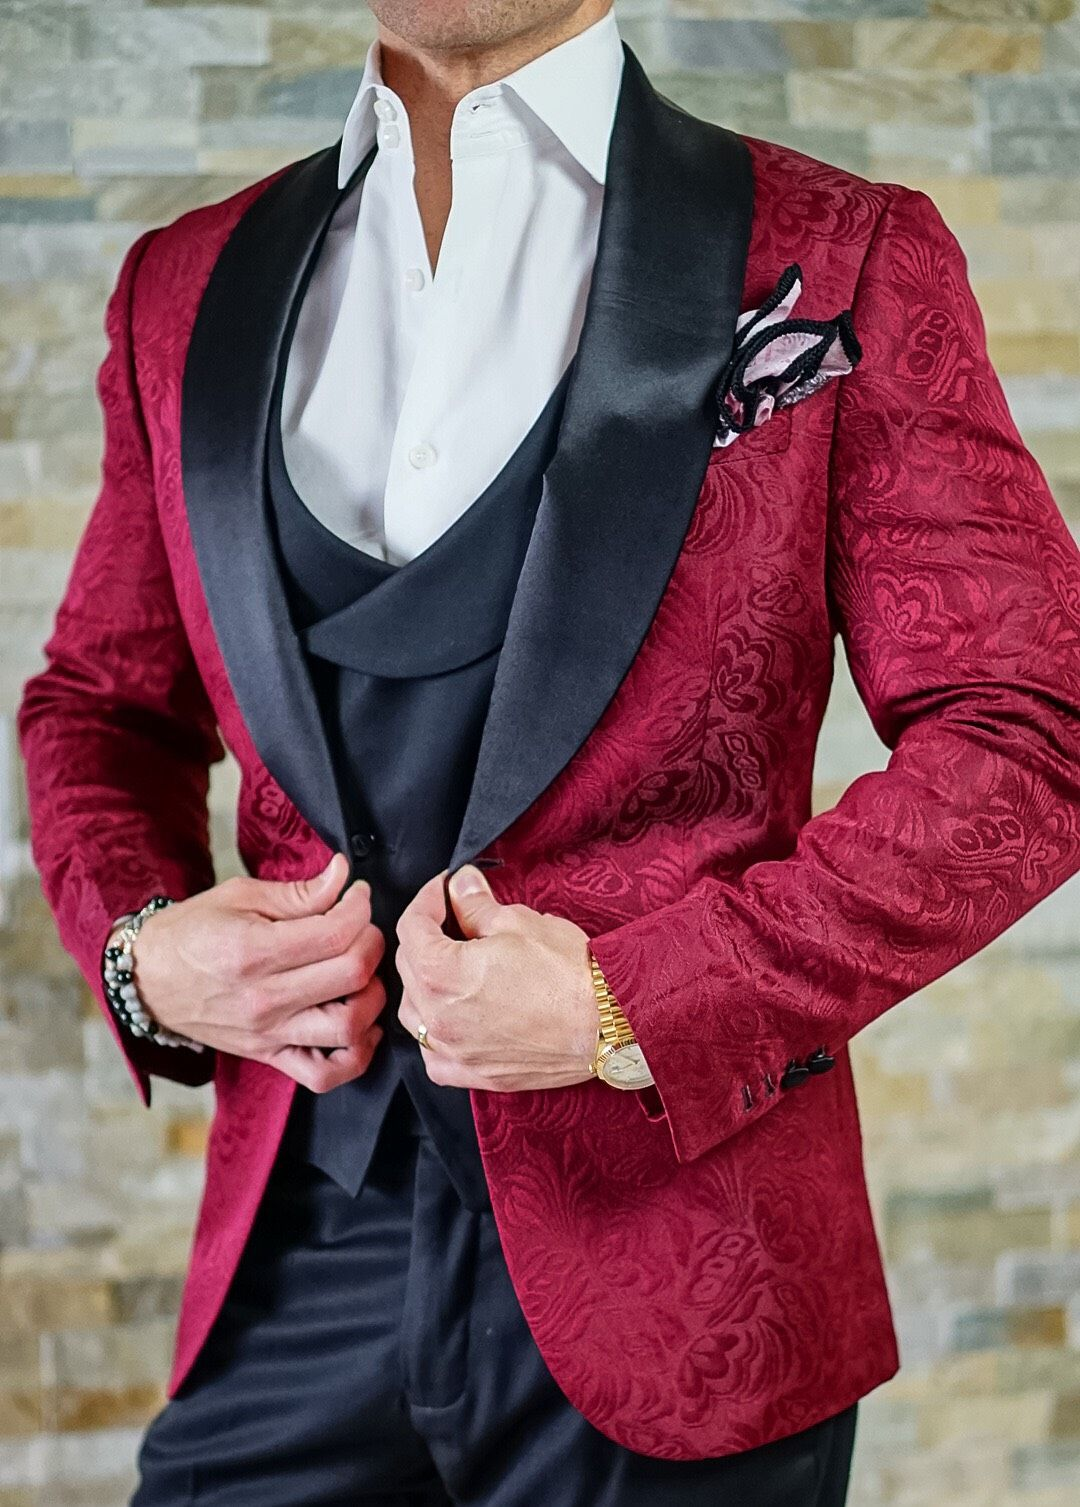 Choose the dinner coat to attend a great event